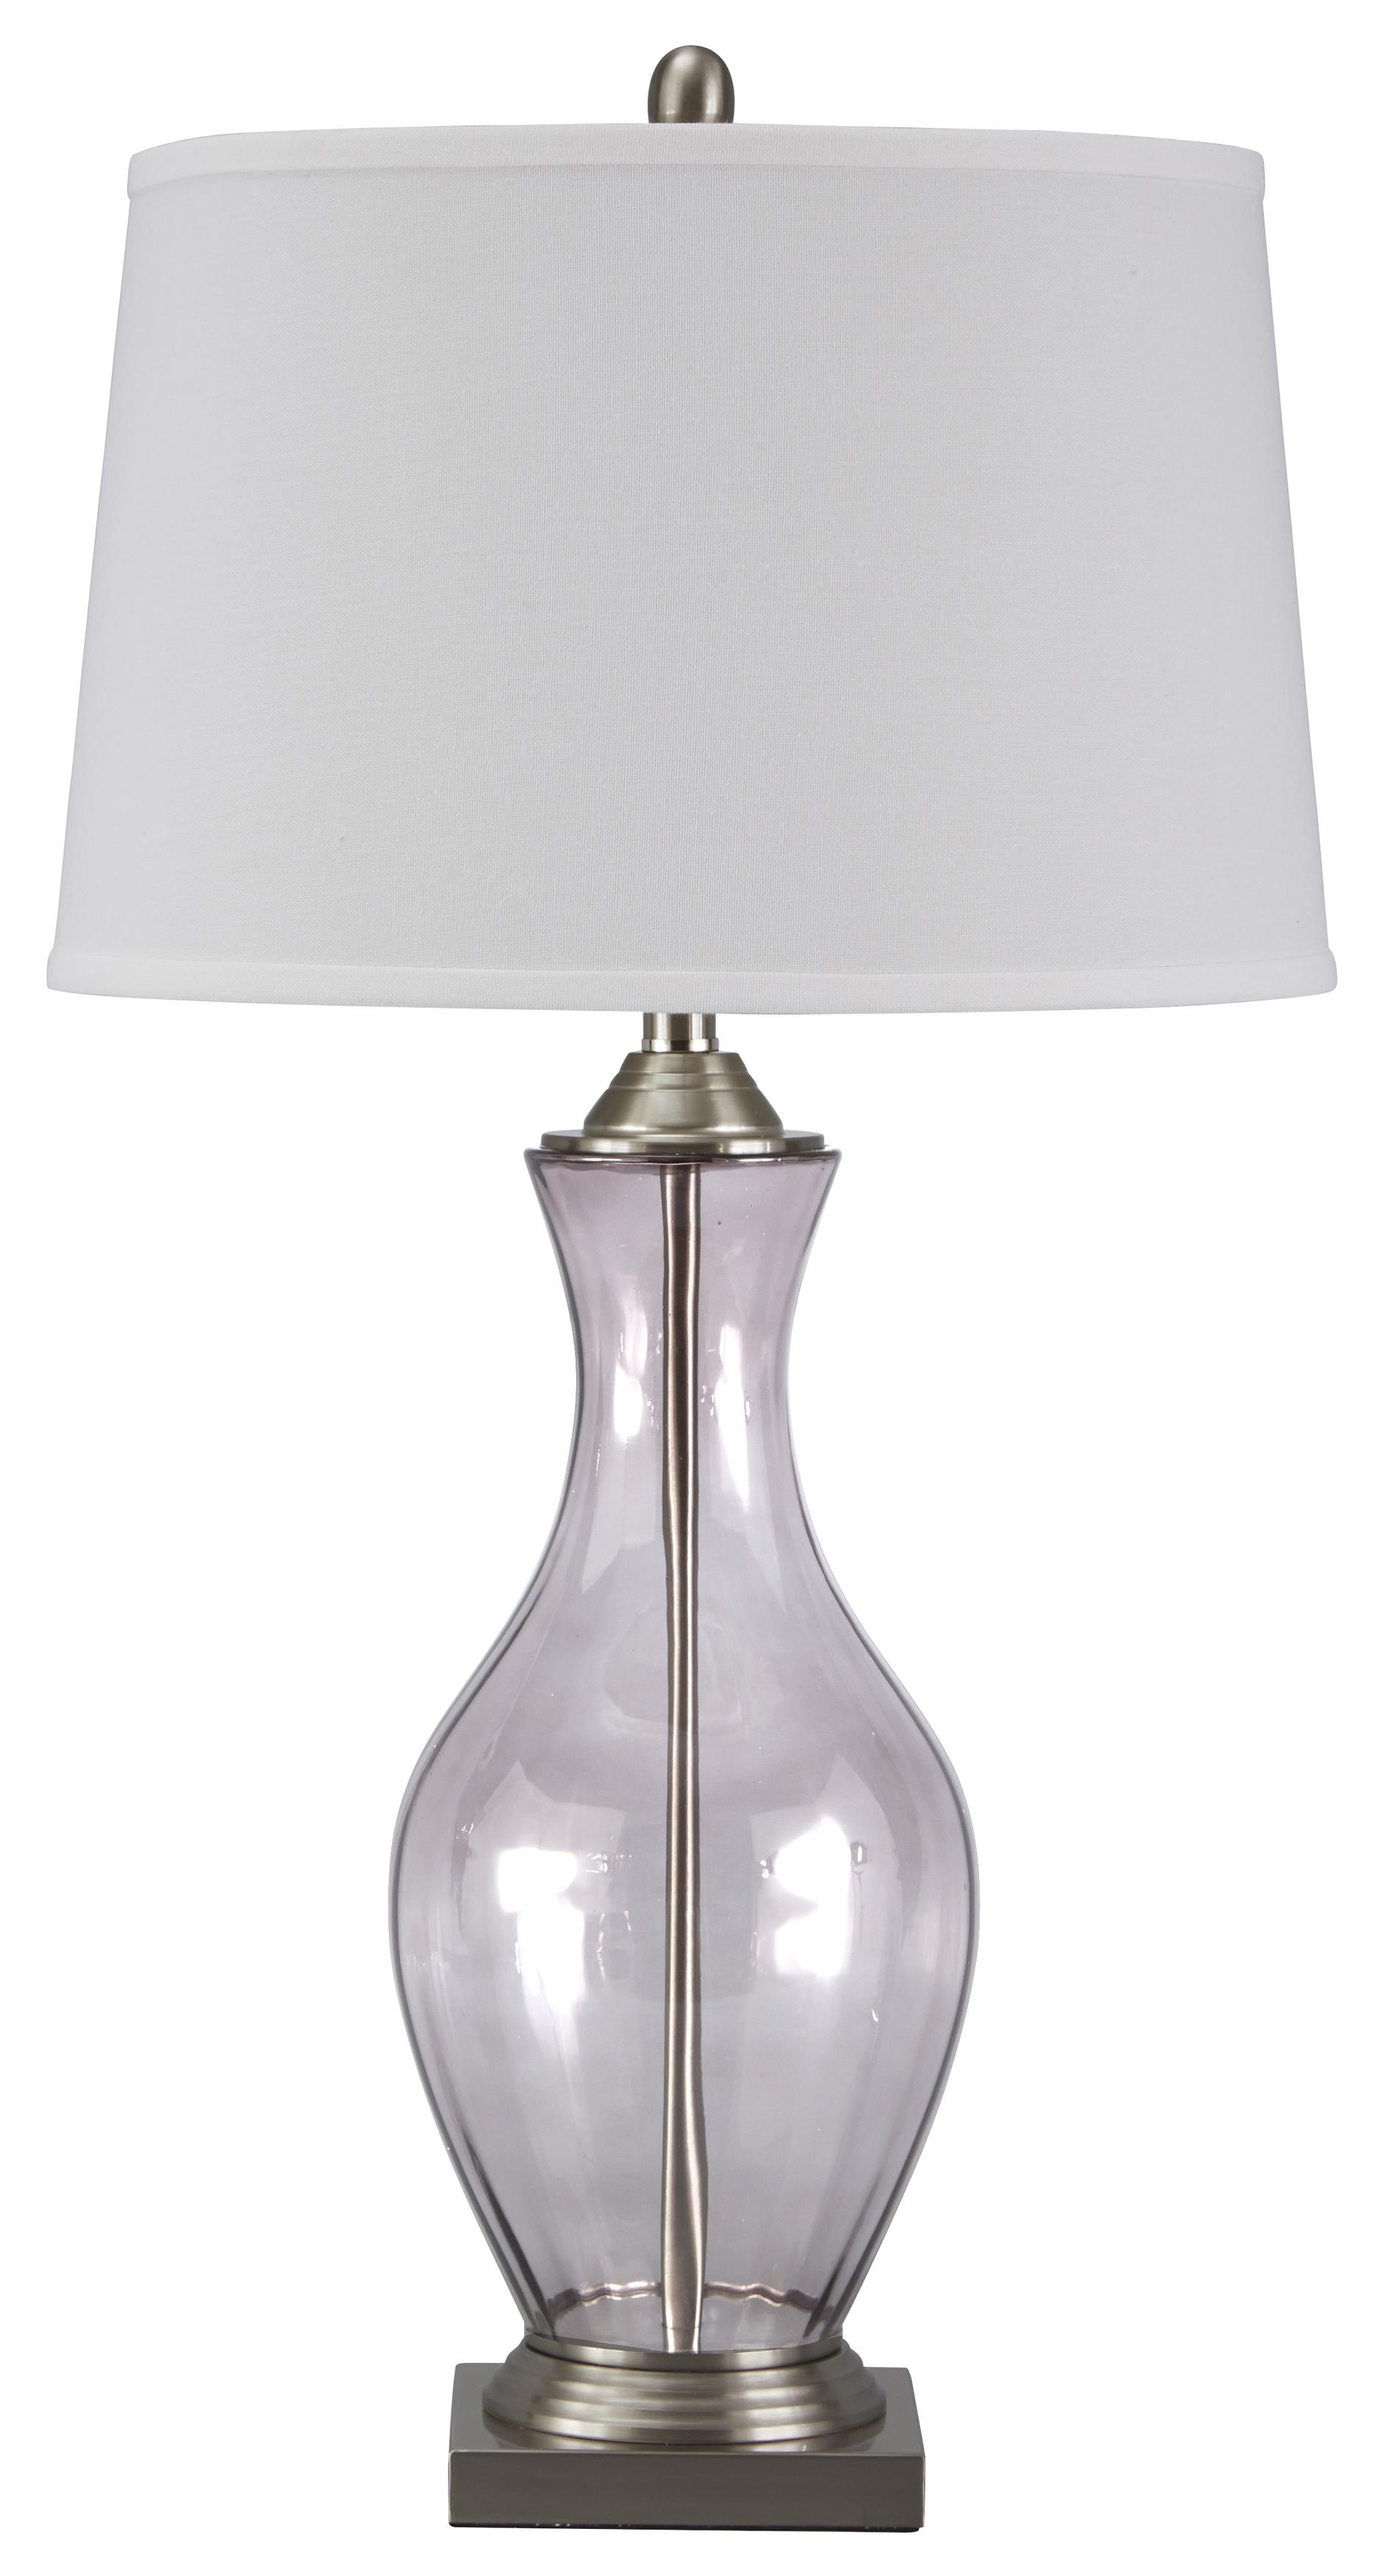 Signature Design by Ashley Lamps - Traditional Classics Shanita Glass Table Lamp - Item Number: L430154